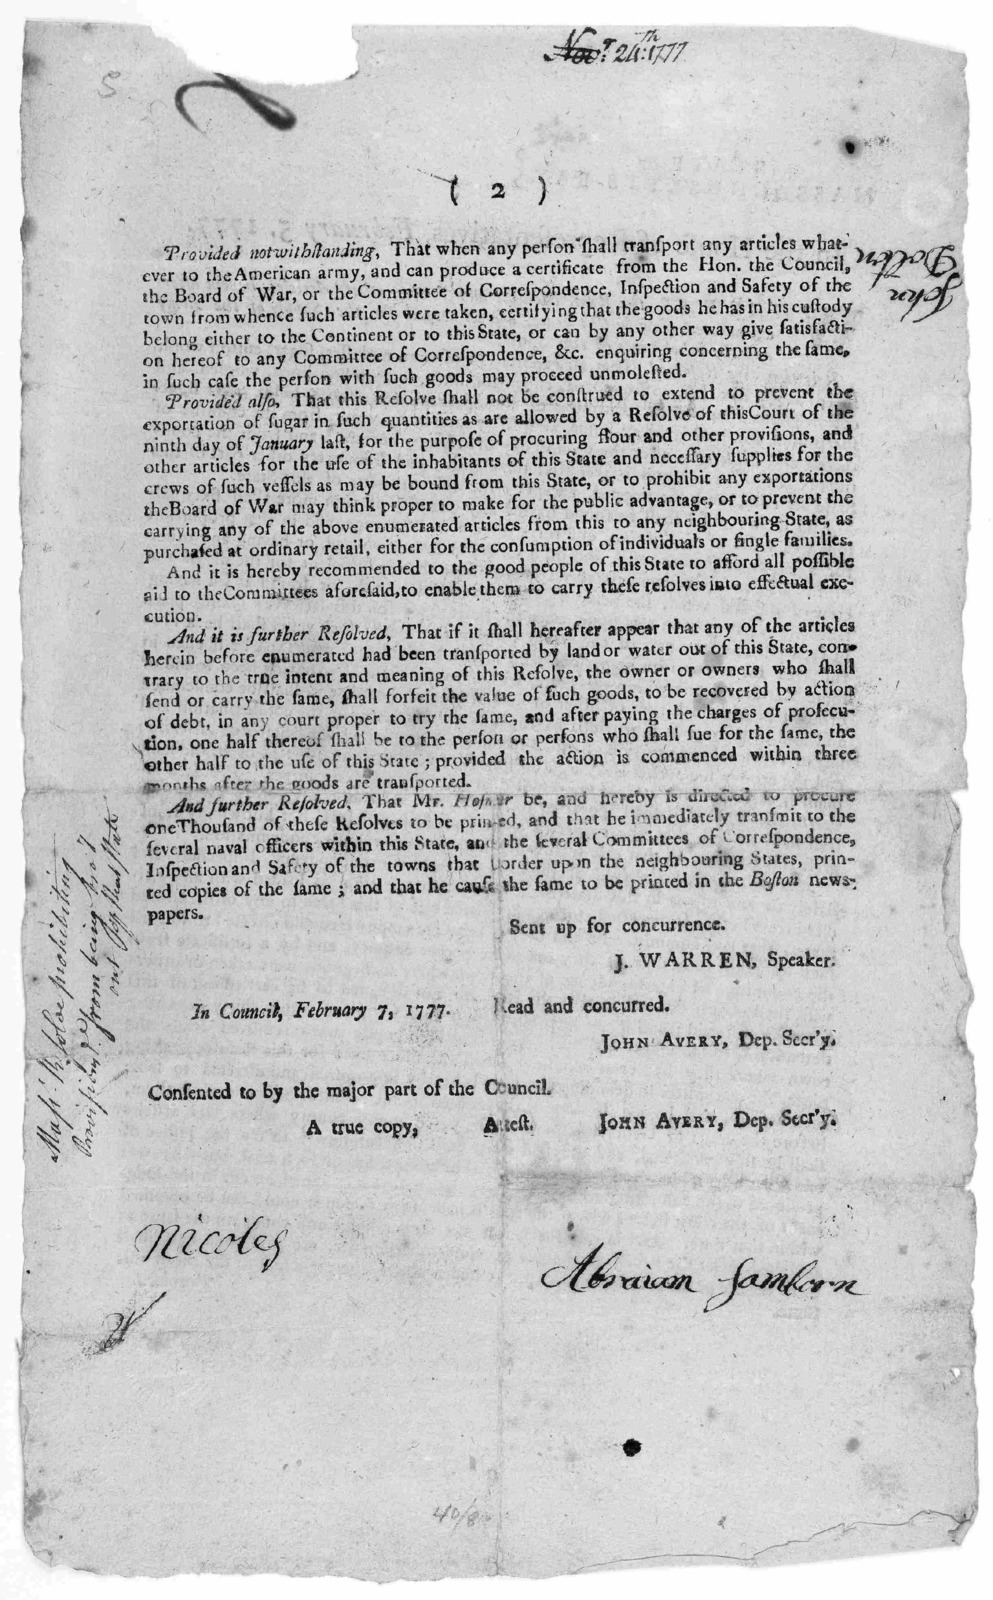 State of Massachusetts-Bay. In the House of representatives, February 5, 1777. Whereas the rum, molasses, and sundry other articles herein needed for the supply of the army and the inhabitants of this State: It is therefore resolved ... In Counc